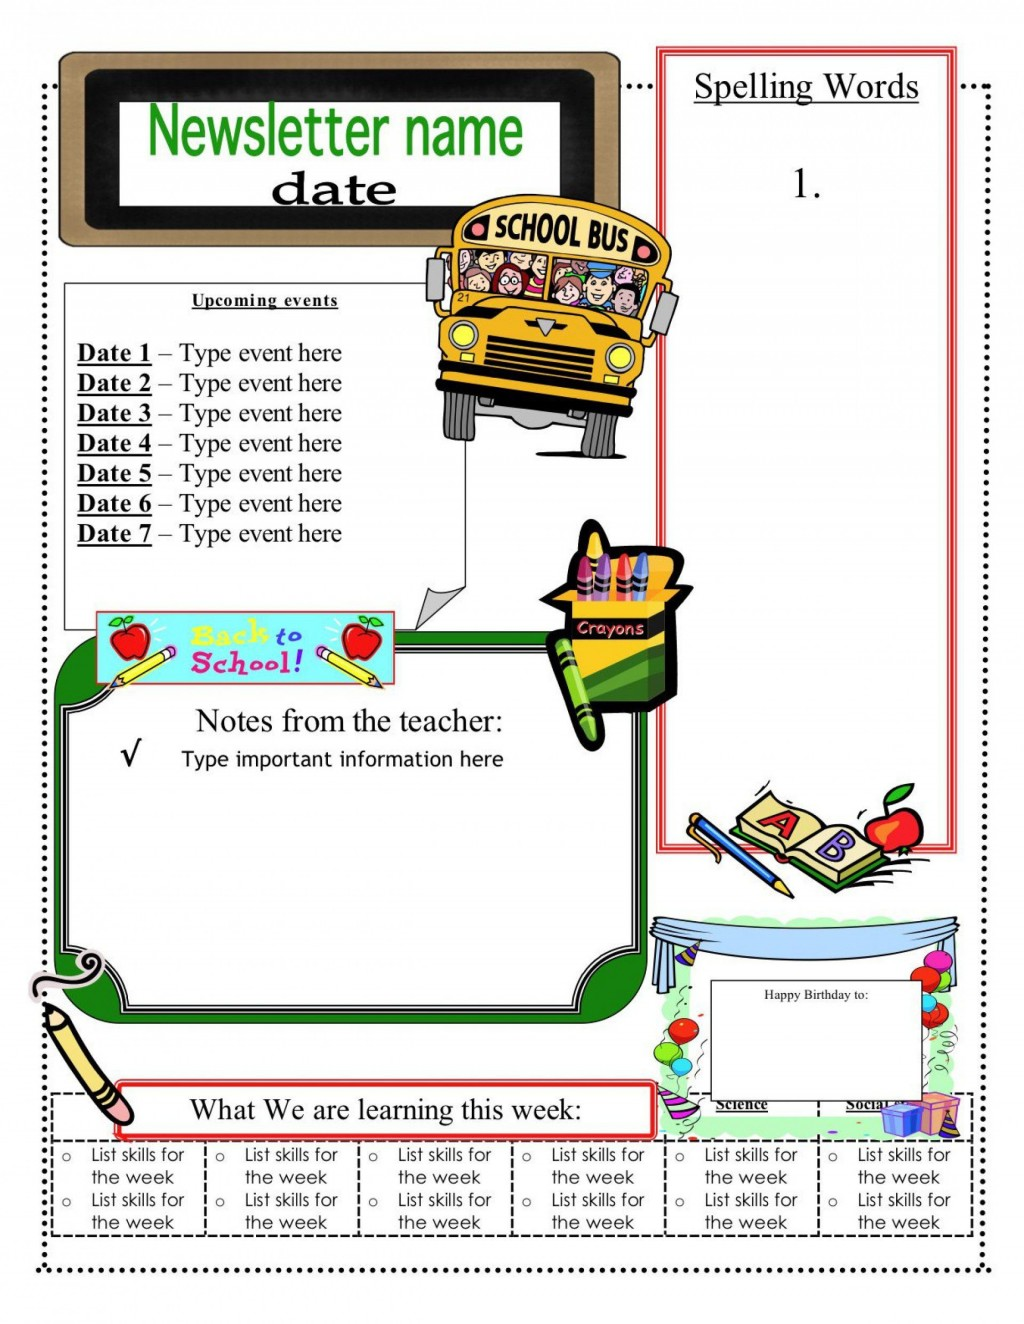 001 Stupendou School Newsletter Template Word Inspiration  Free Classroom For MicrosoftLarge